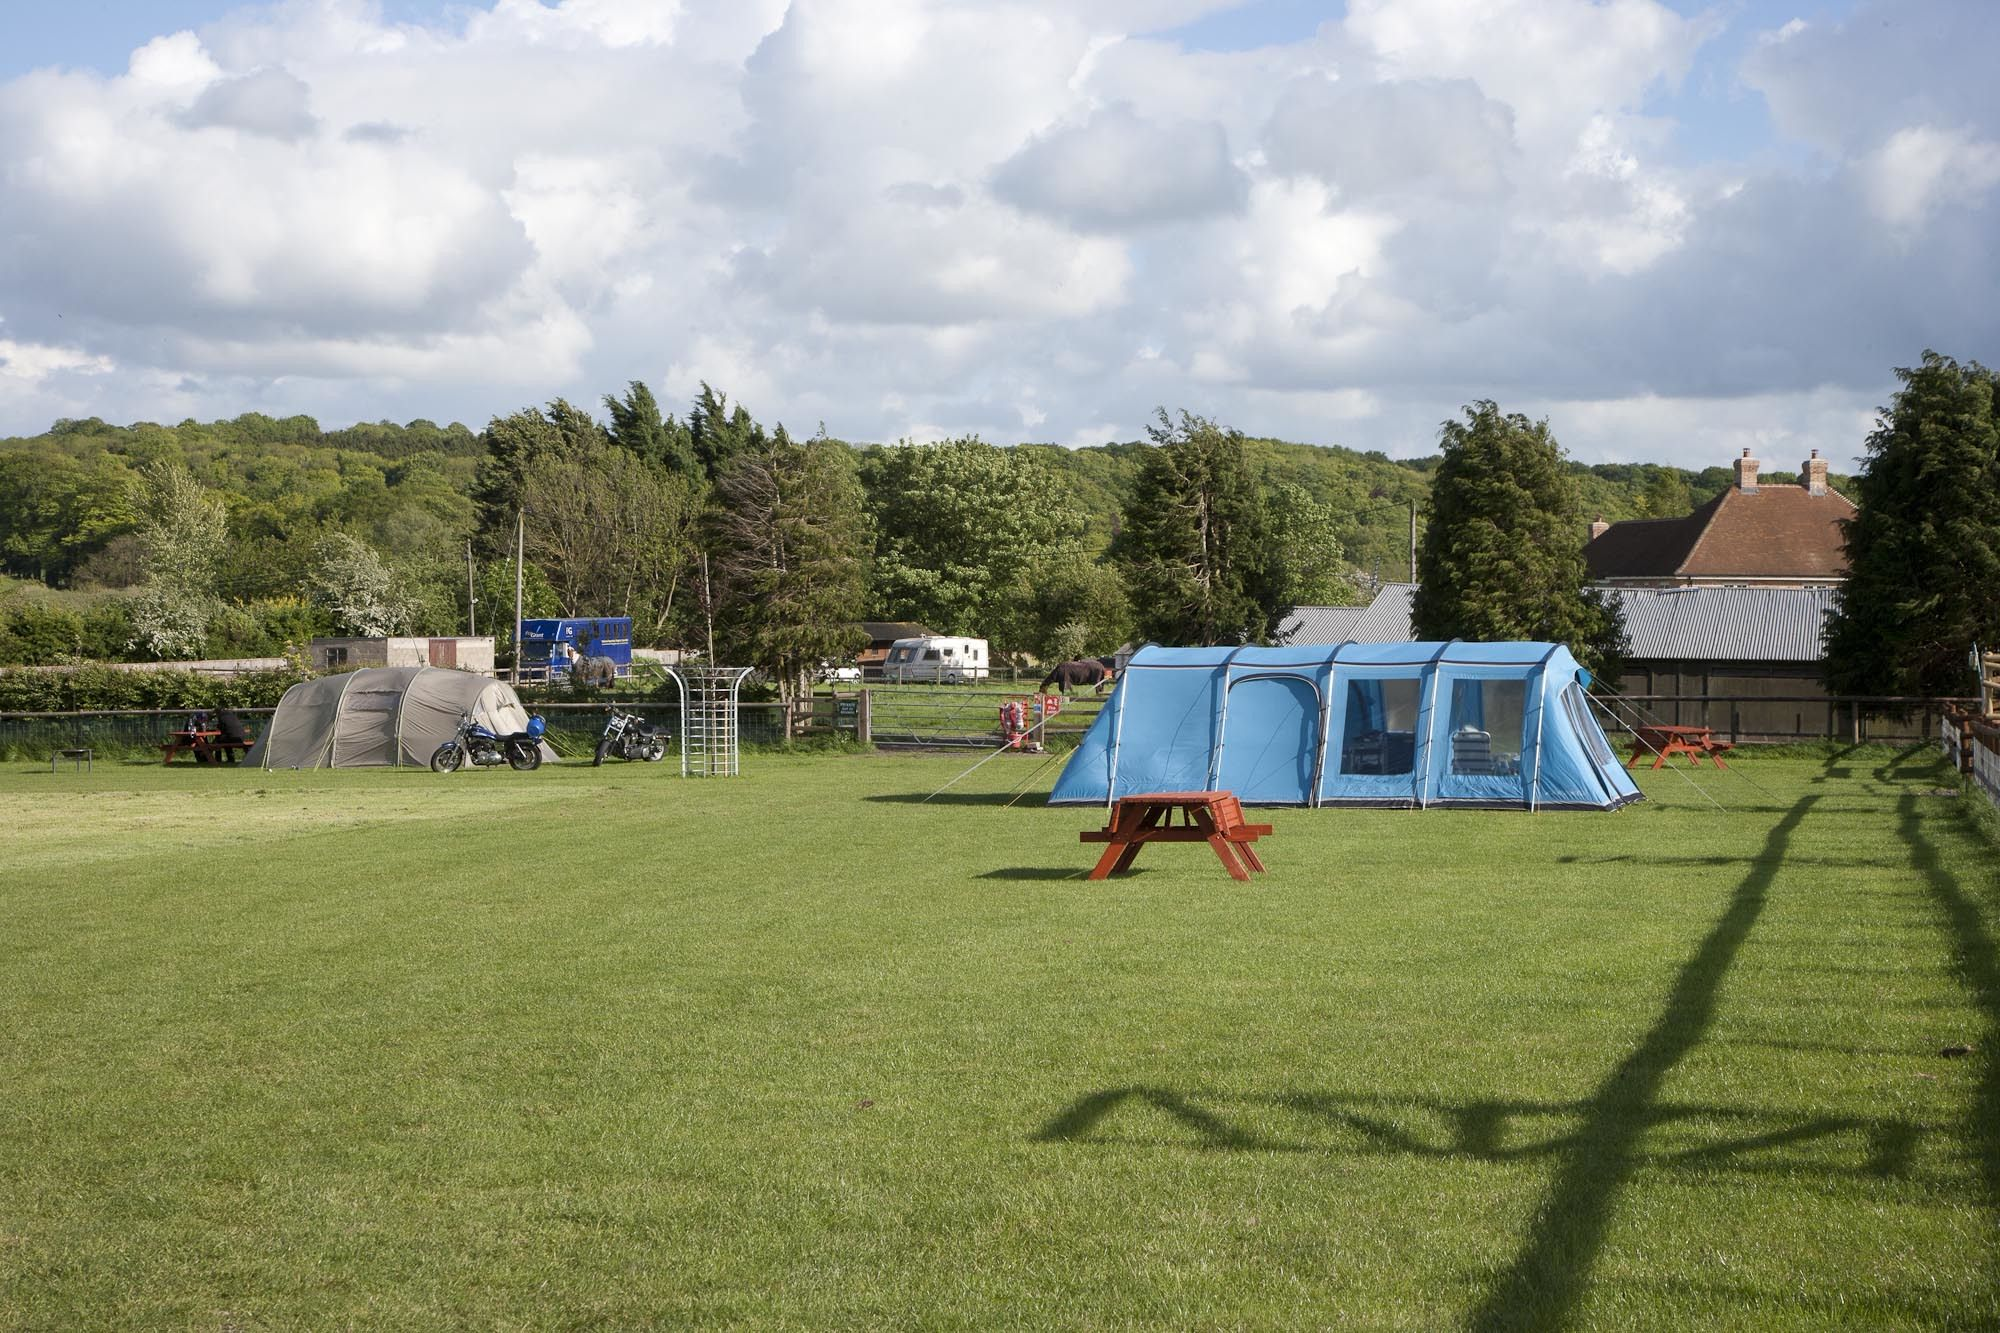 Campsites in Wiltshire holidays at Cool Places